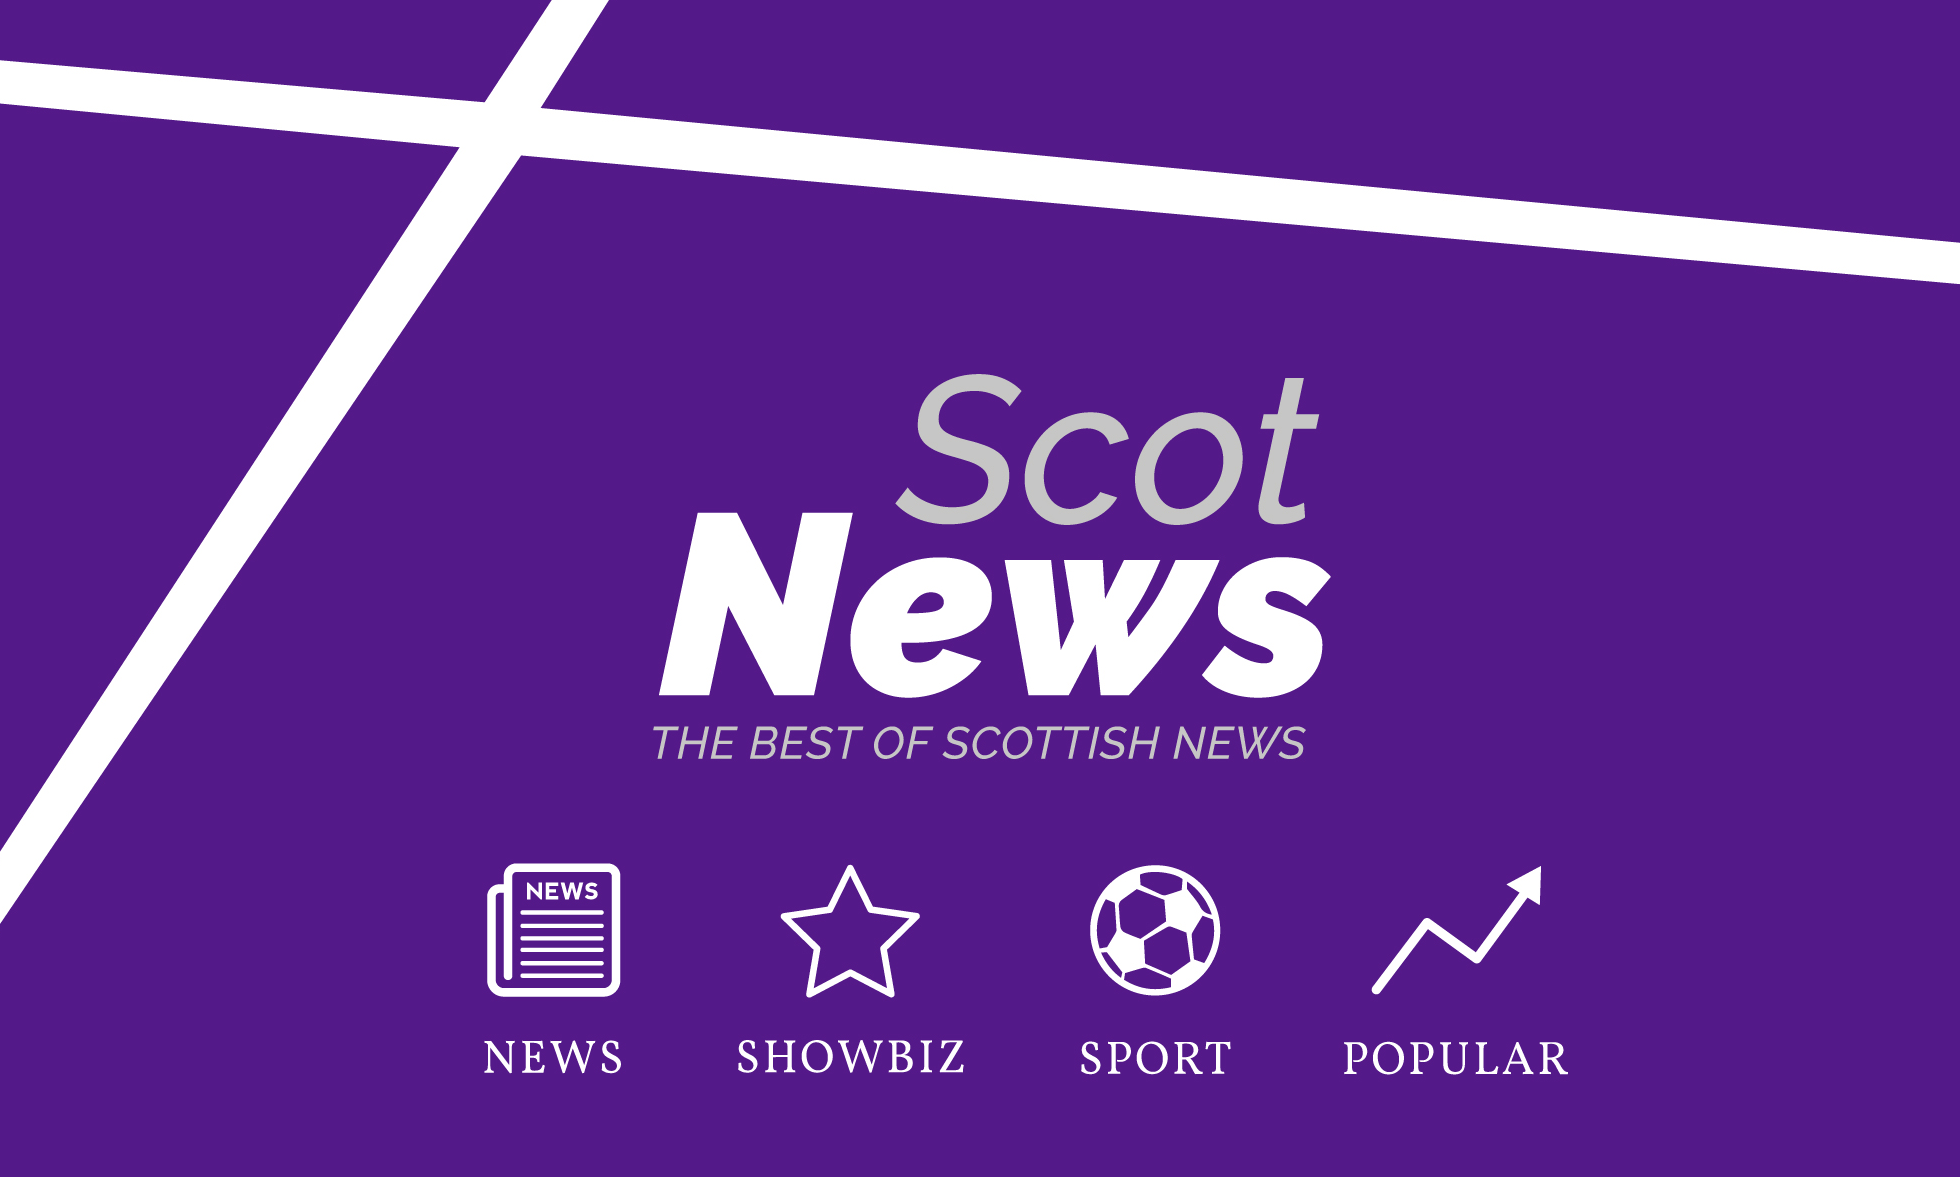 See more at www.scotnews.co.uk.